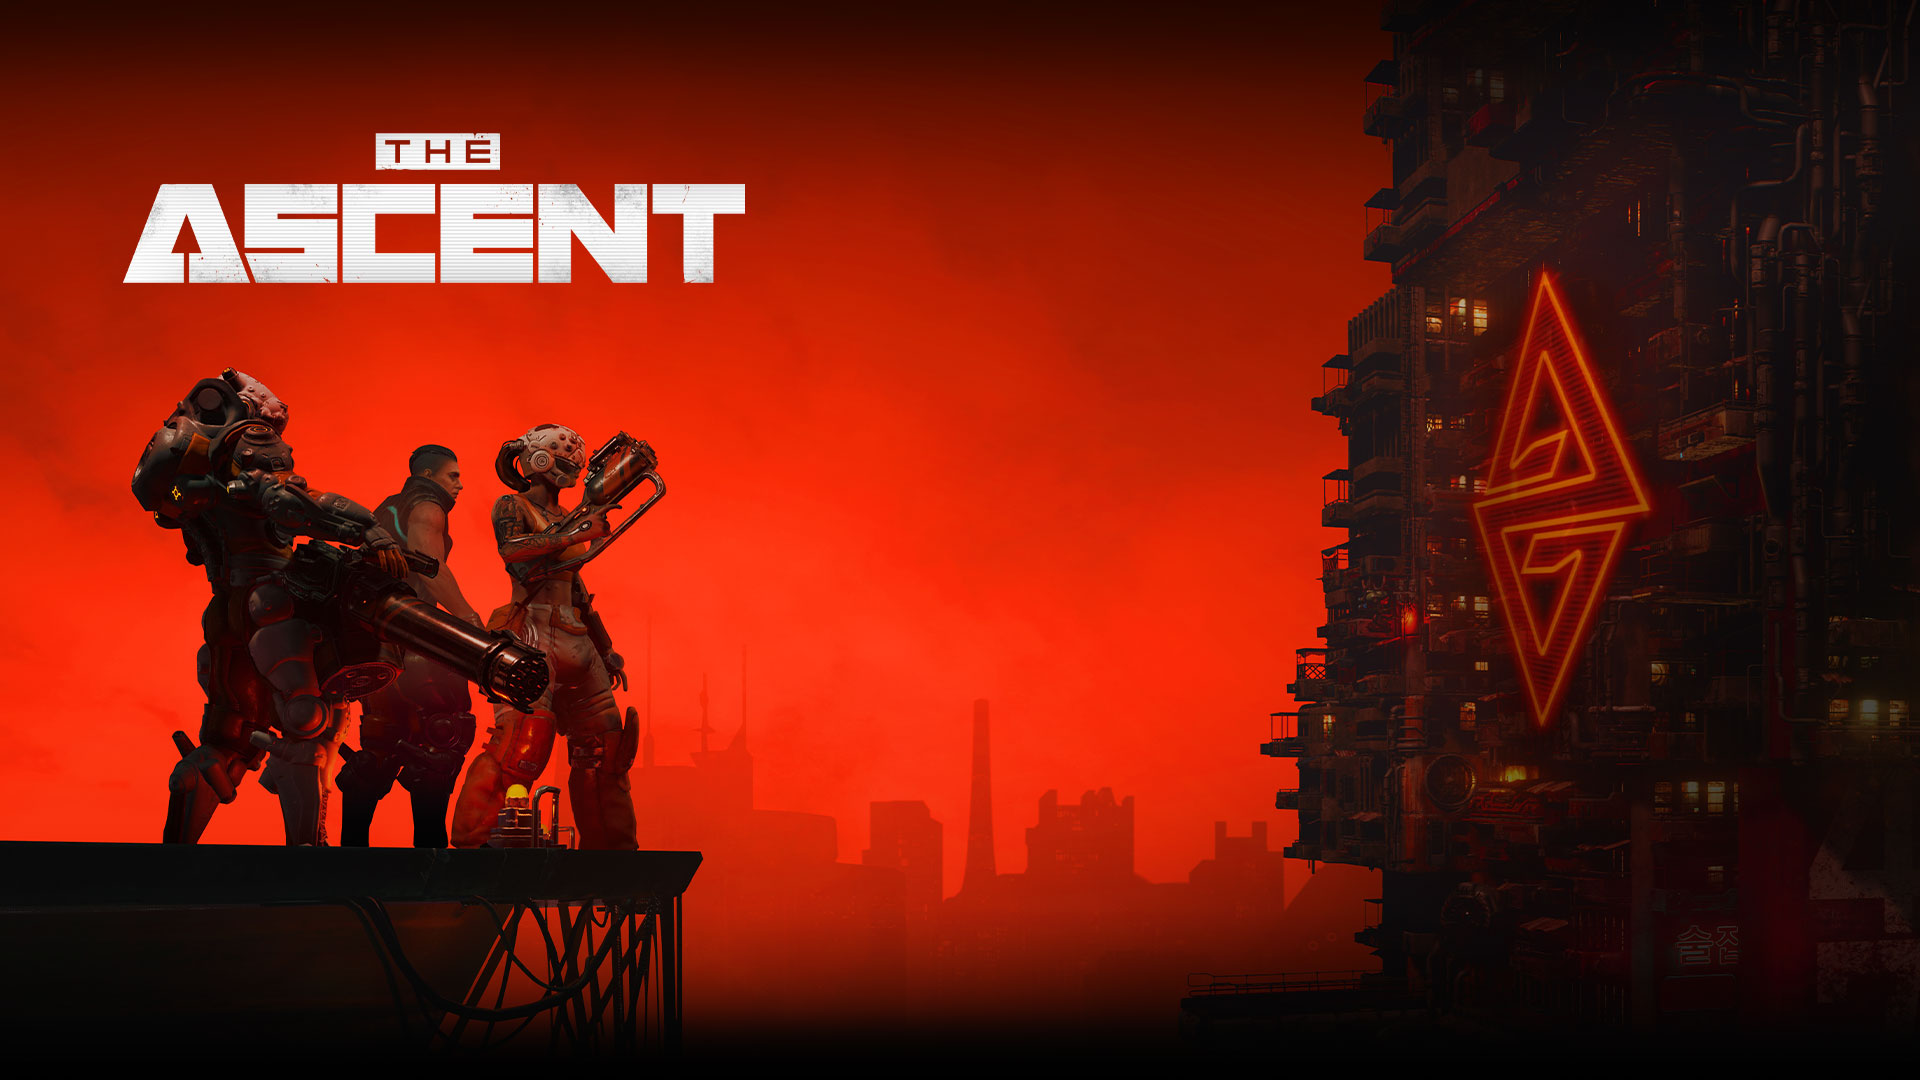 The Ascent, Three characters stand on a platform overlooking a large cyberpunk style industrial building